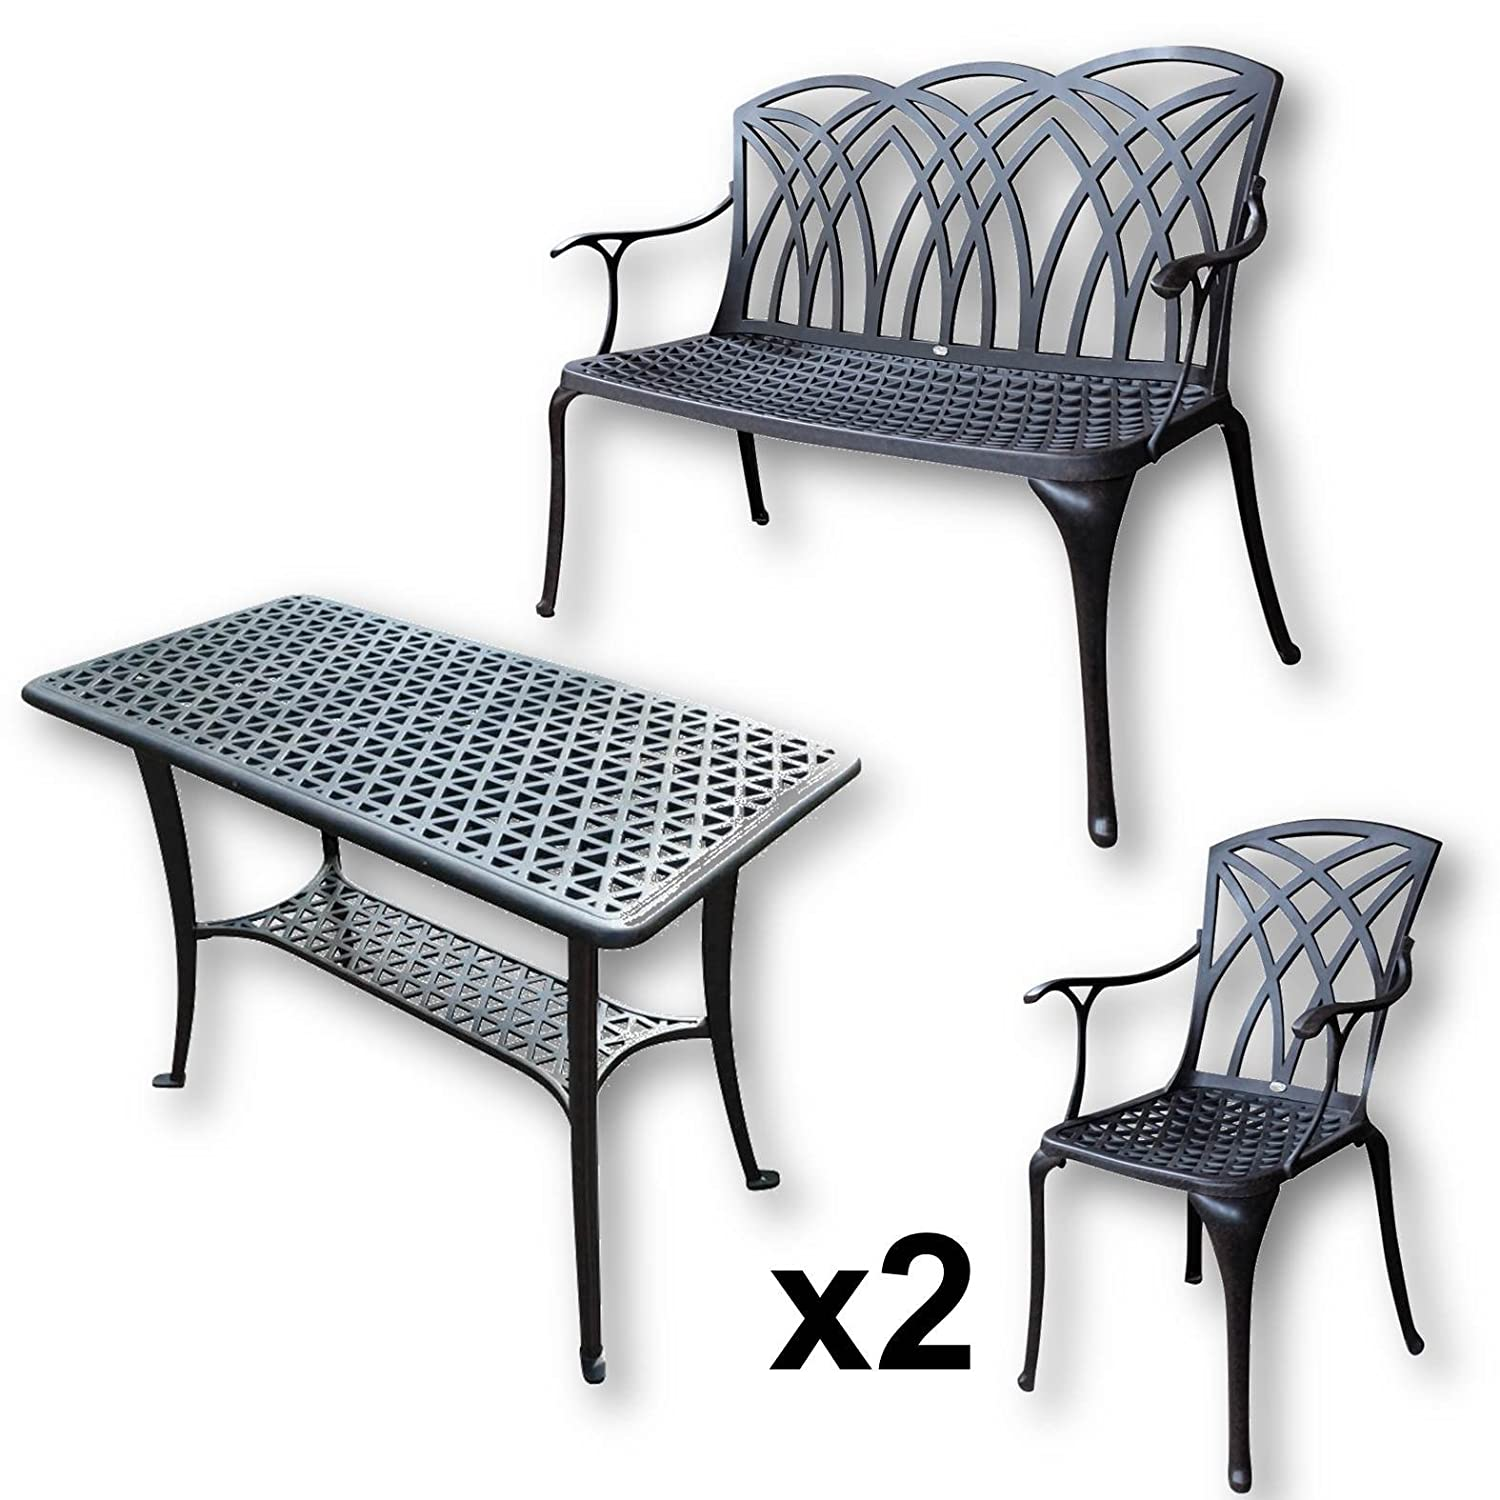 Fantastic Lazy Susan Furniture Bbq Side Table 1 April Bench And 2 Machost Co Dining Chair Design Ideas Machostcouk